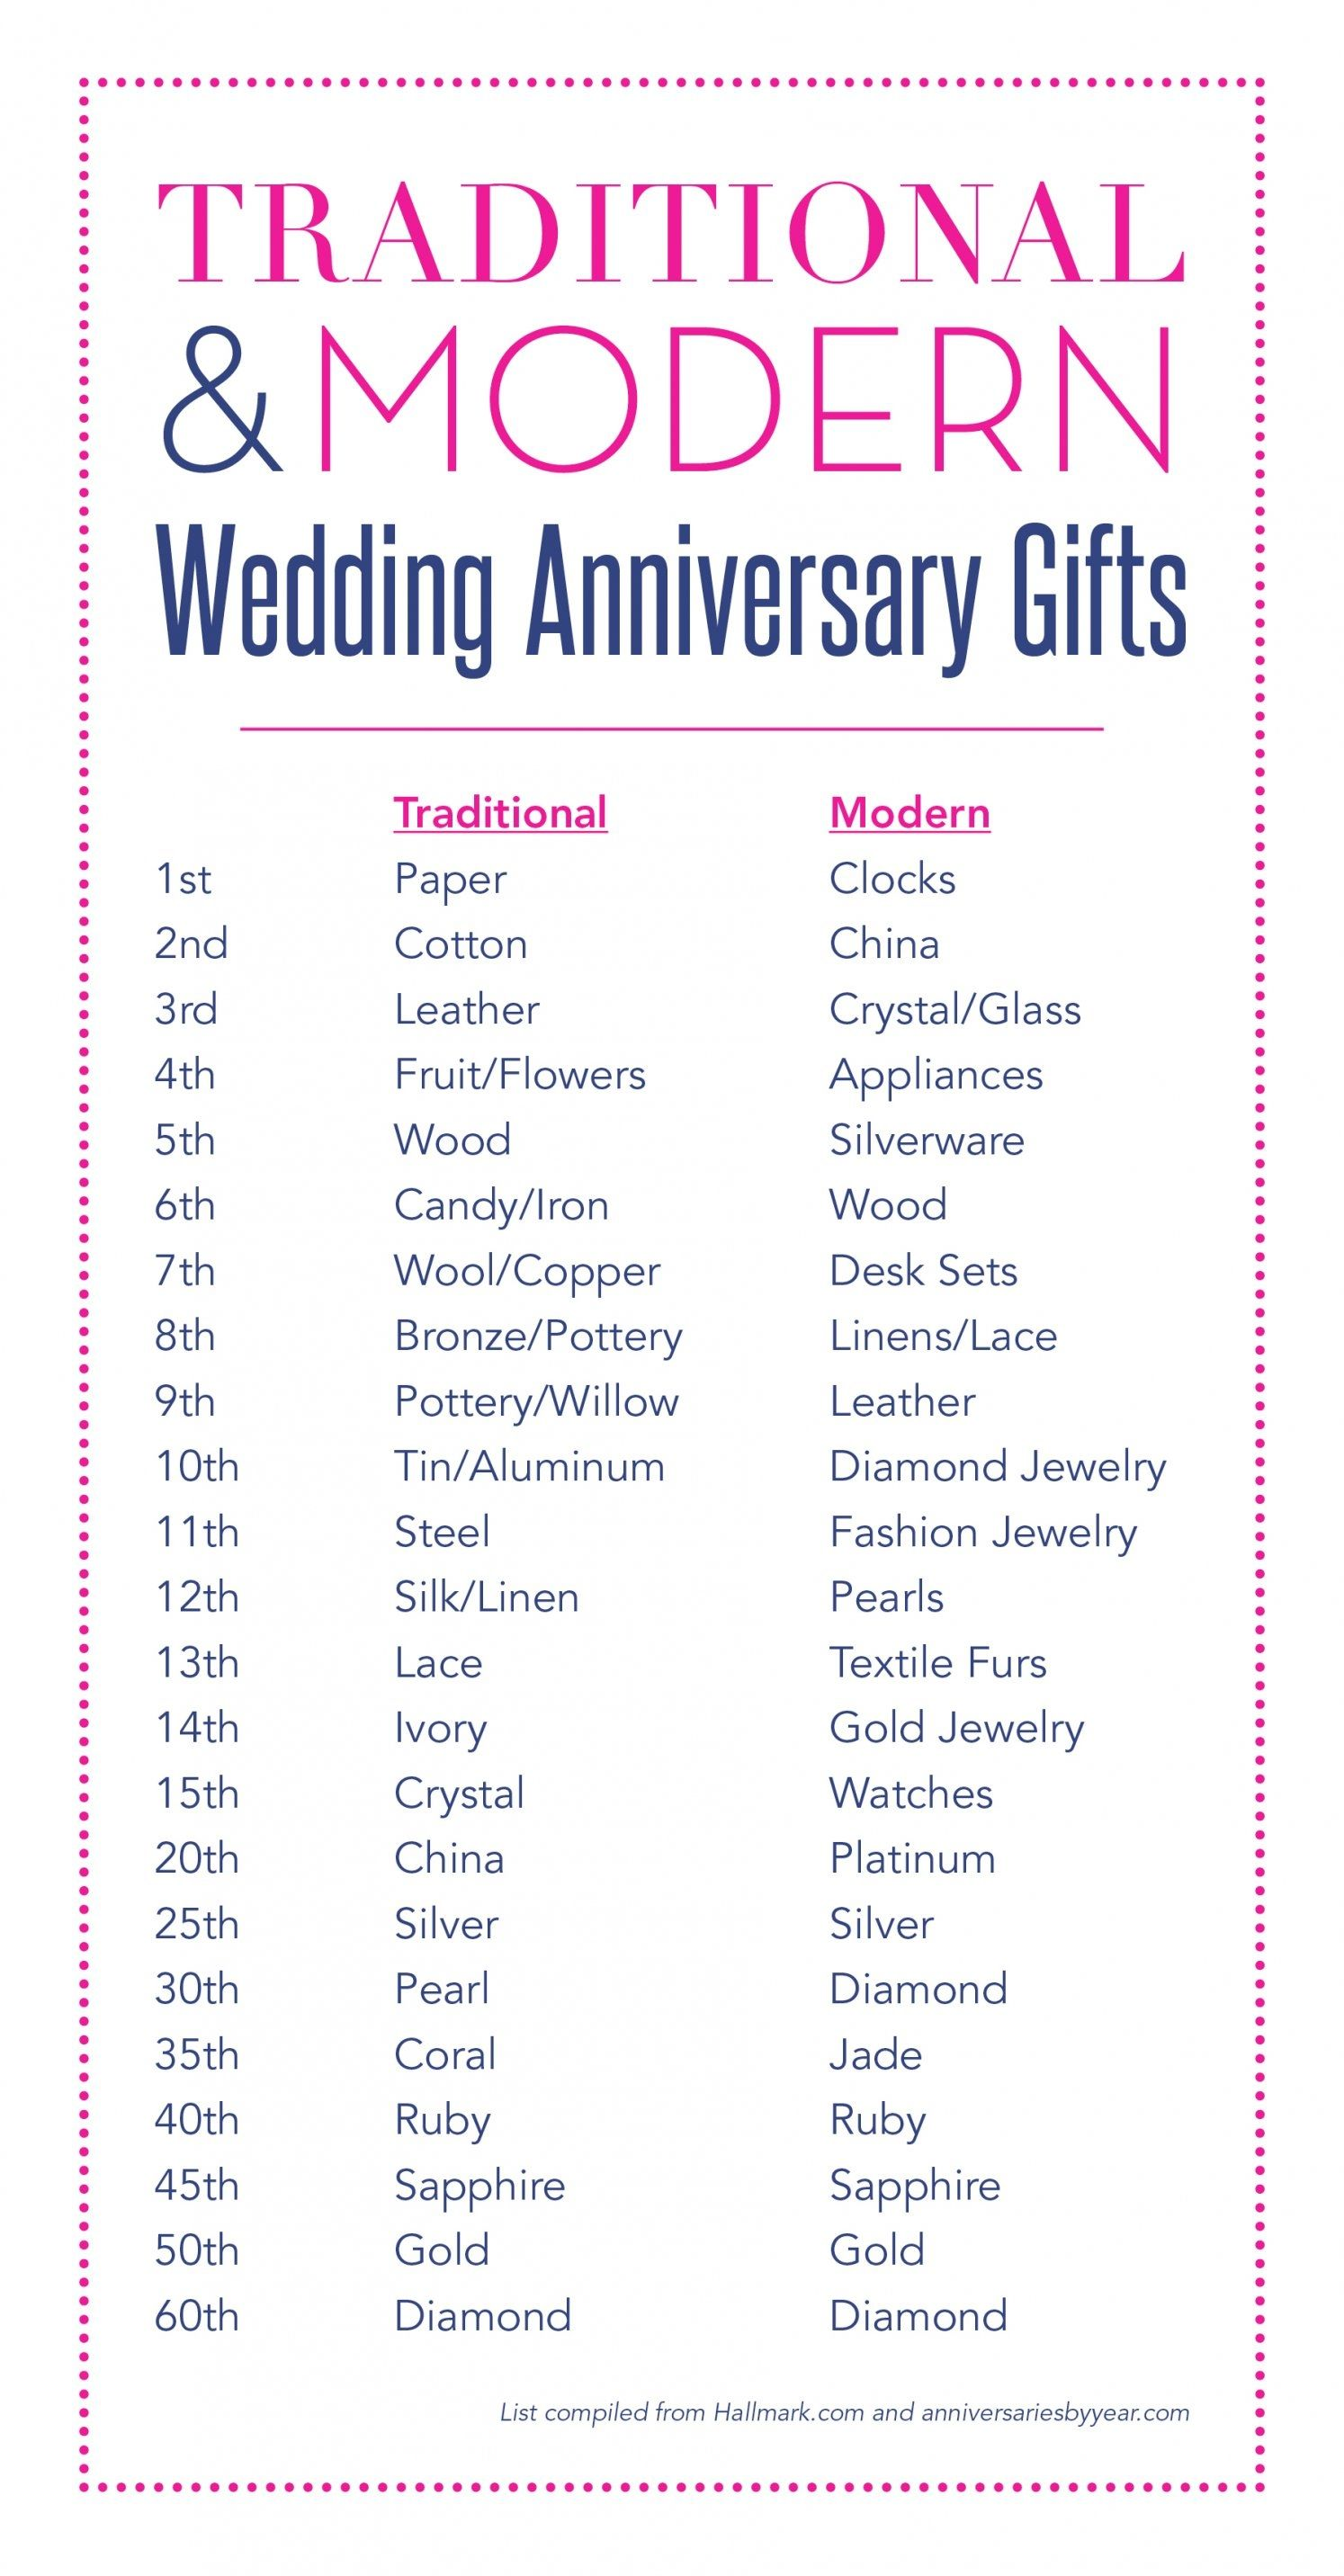 32 Gorgeous Traditional Wedding Anniversary Gifts Ideas Marriage